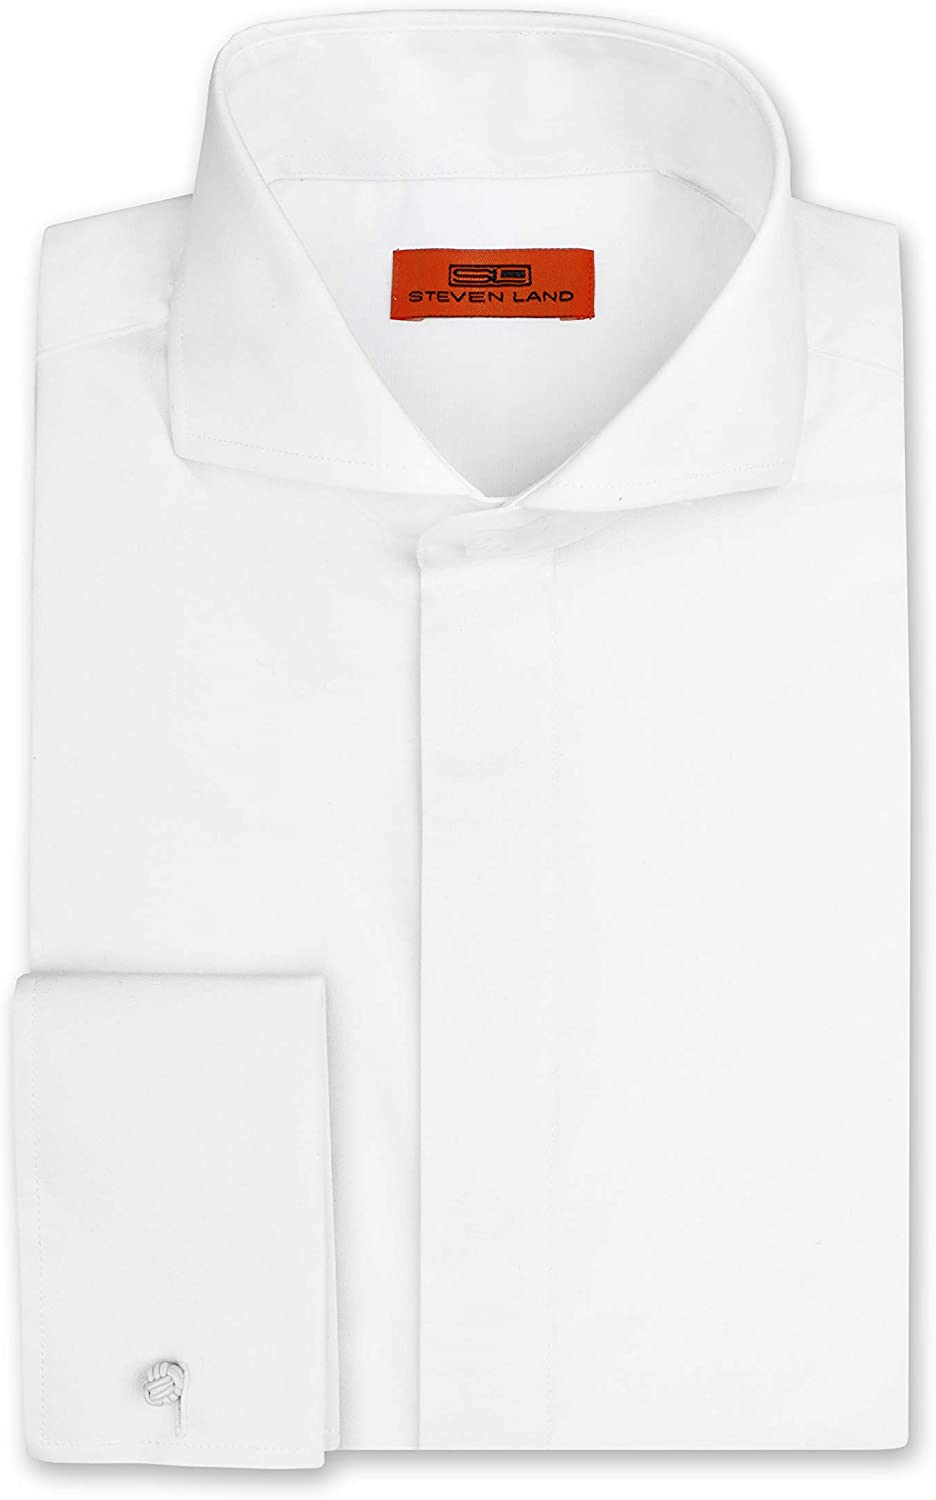 Steven Land Men s Dress Shirt, Regular Fit Breathable Cotton Blend, French Cuff (Big and Tall) DS60